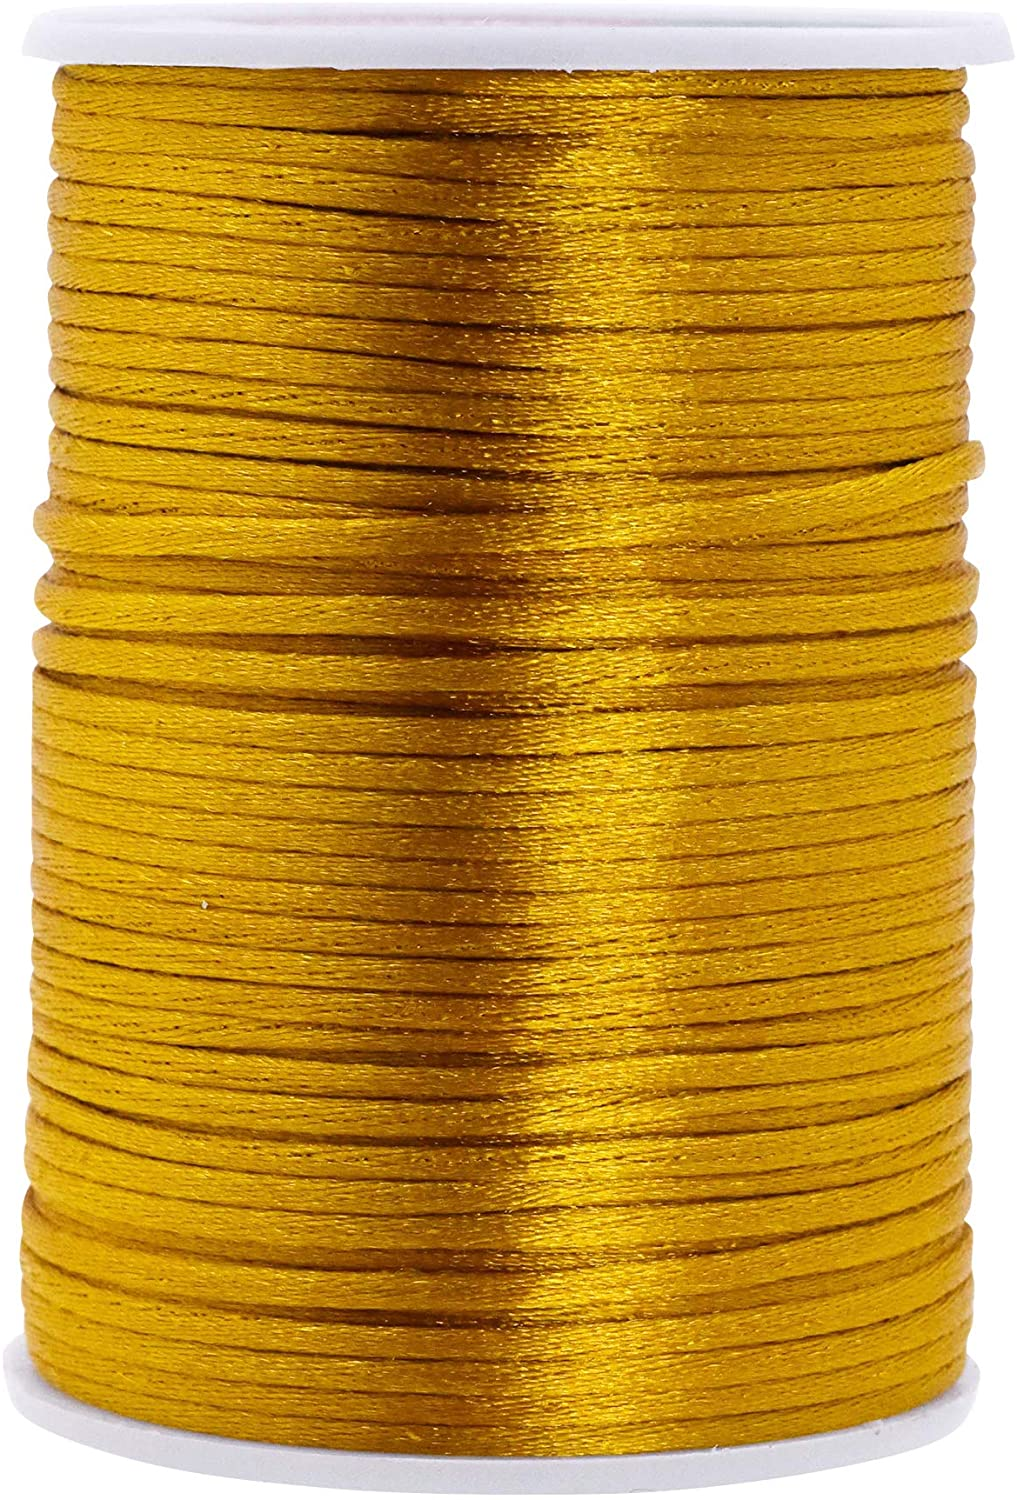 Mandala Crafts Satin Rattail Cord String from Nylon for Chinese Knot, Macramé, Trim, Jewelry Making (Gold, 2mm)